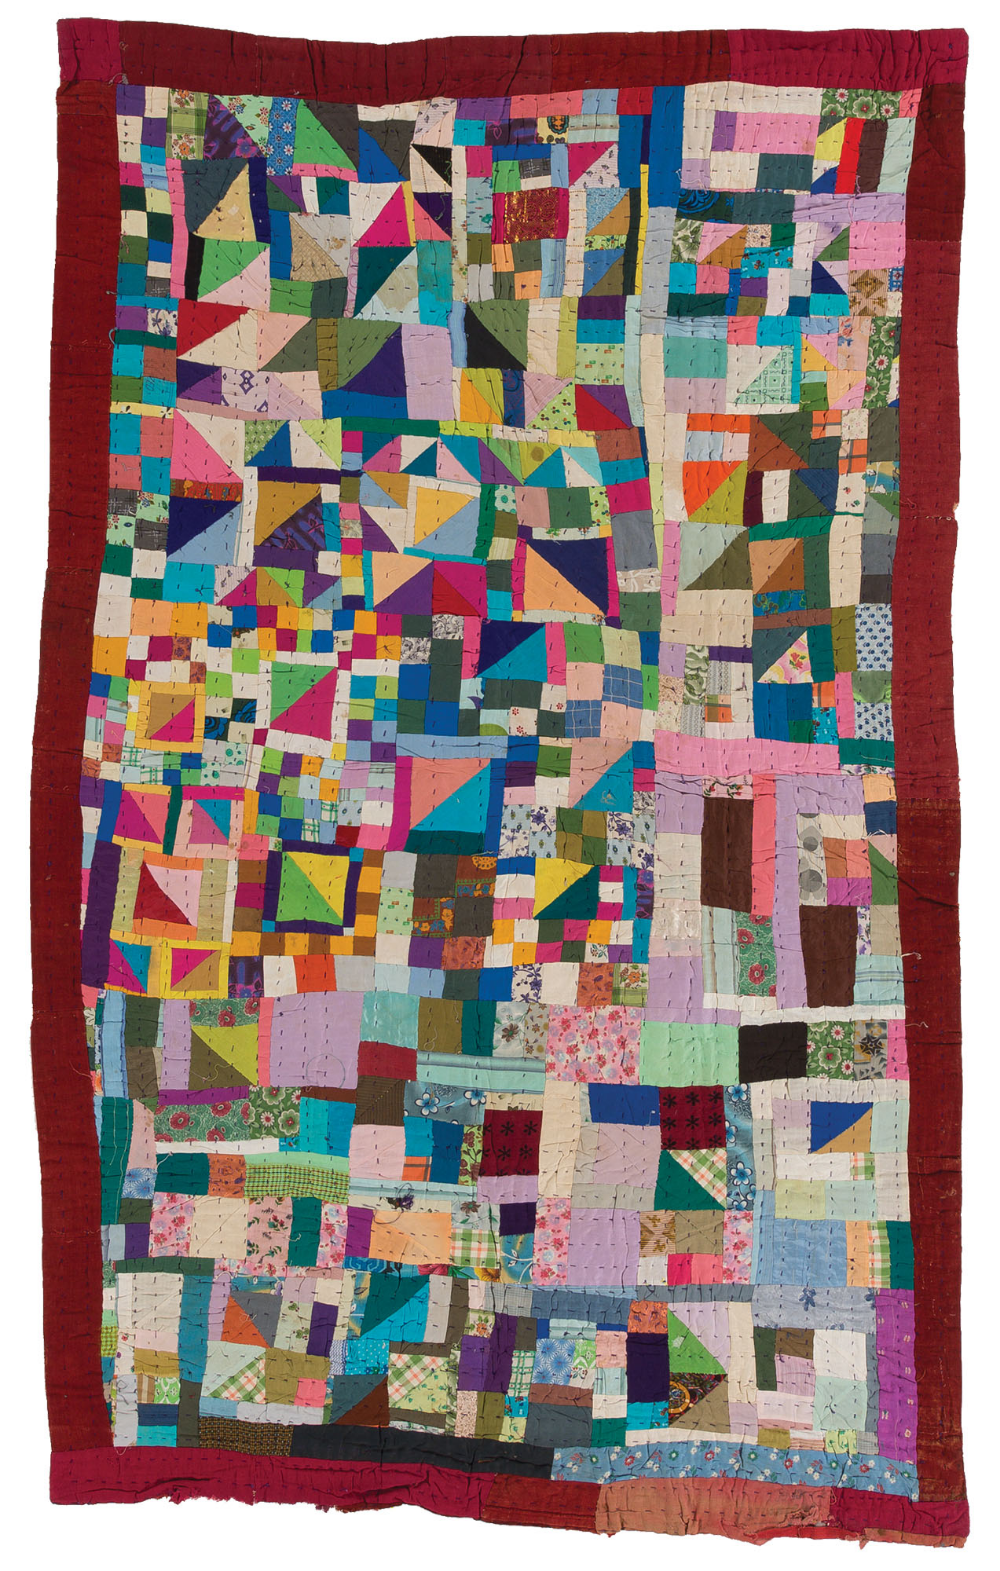 Collecting And Recollecting International Quilt Museum Lincoln Ne Quilts Creative Artists African Art